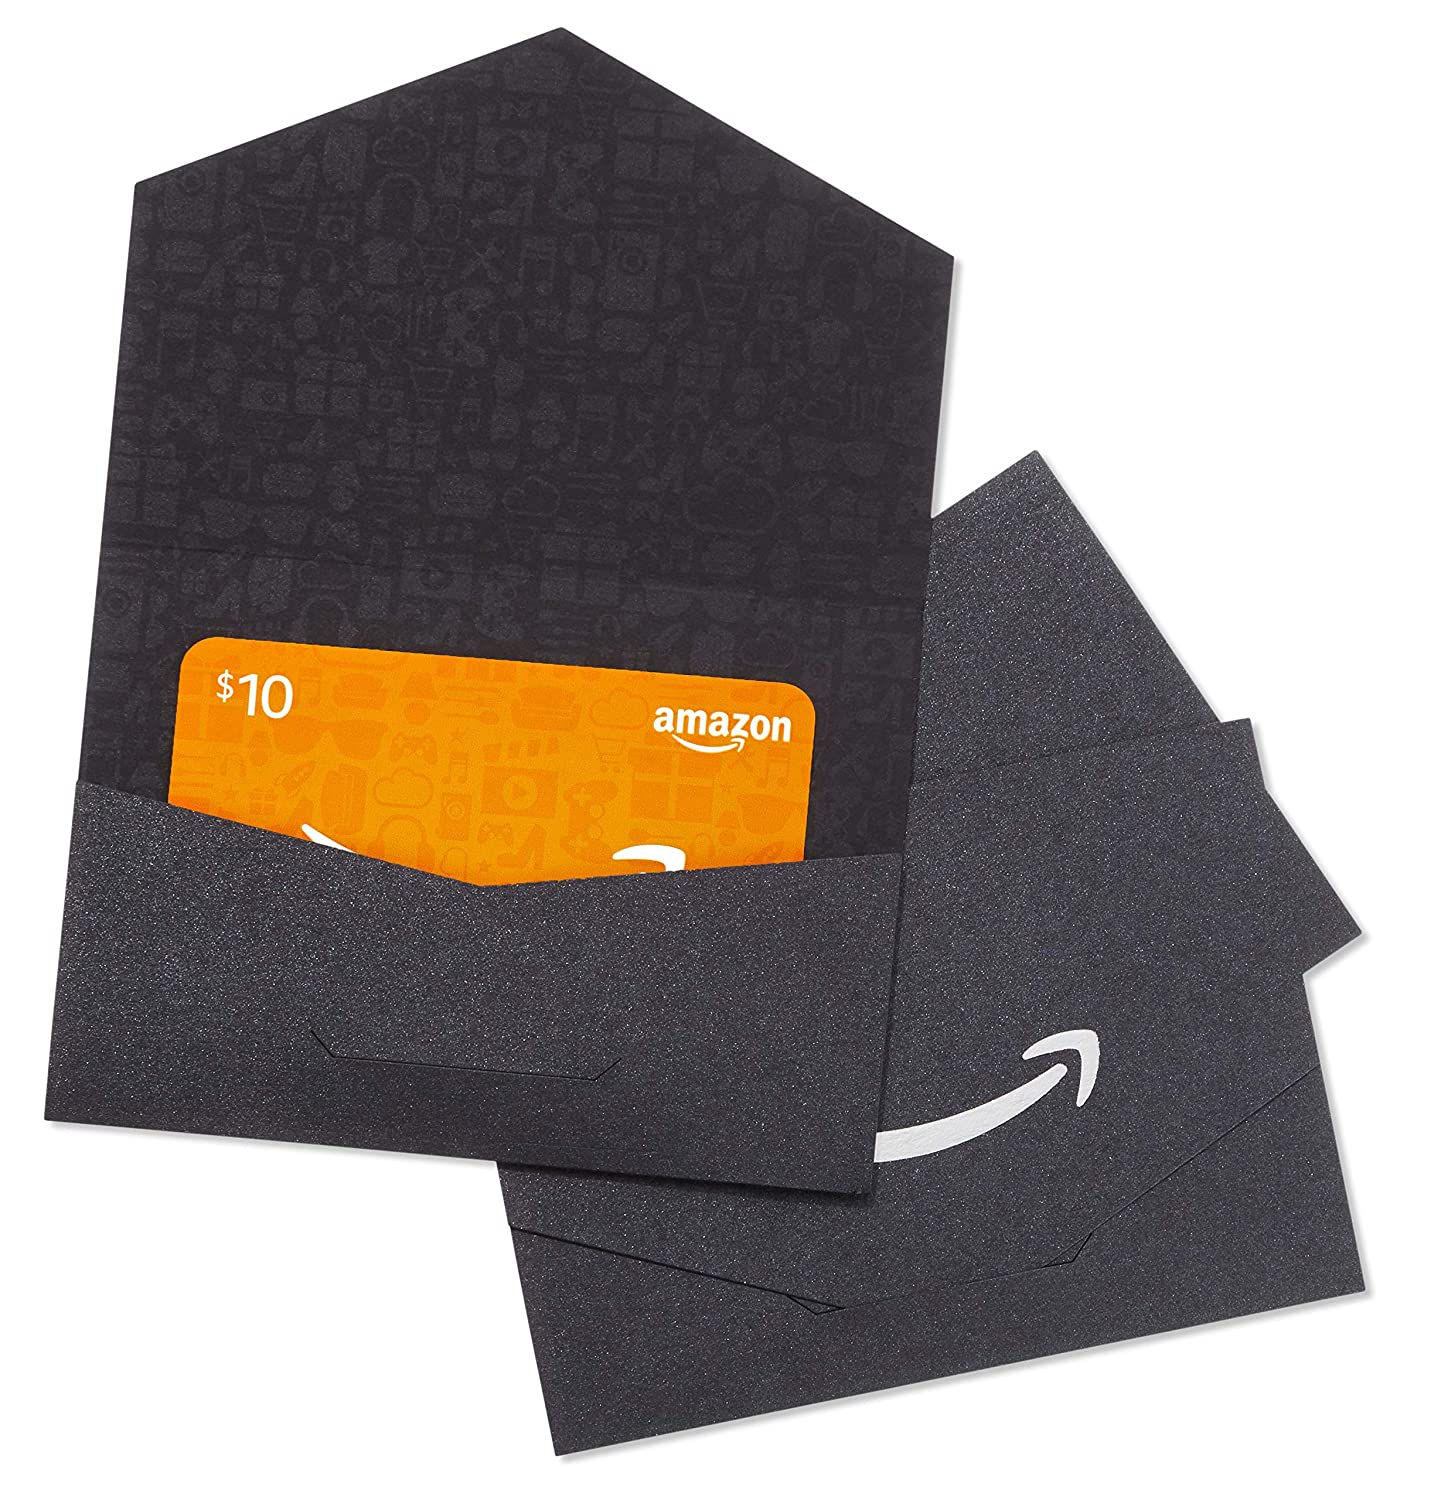 Amazon.com $10 Gift Cards - Pack of 3 Black and Silver Mini Envelopes